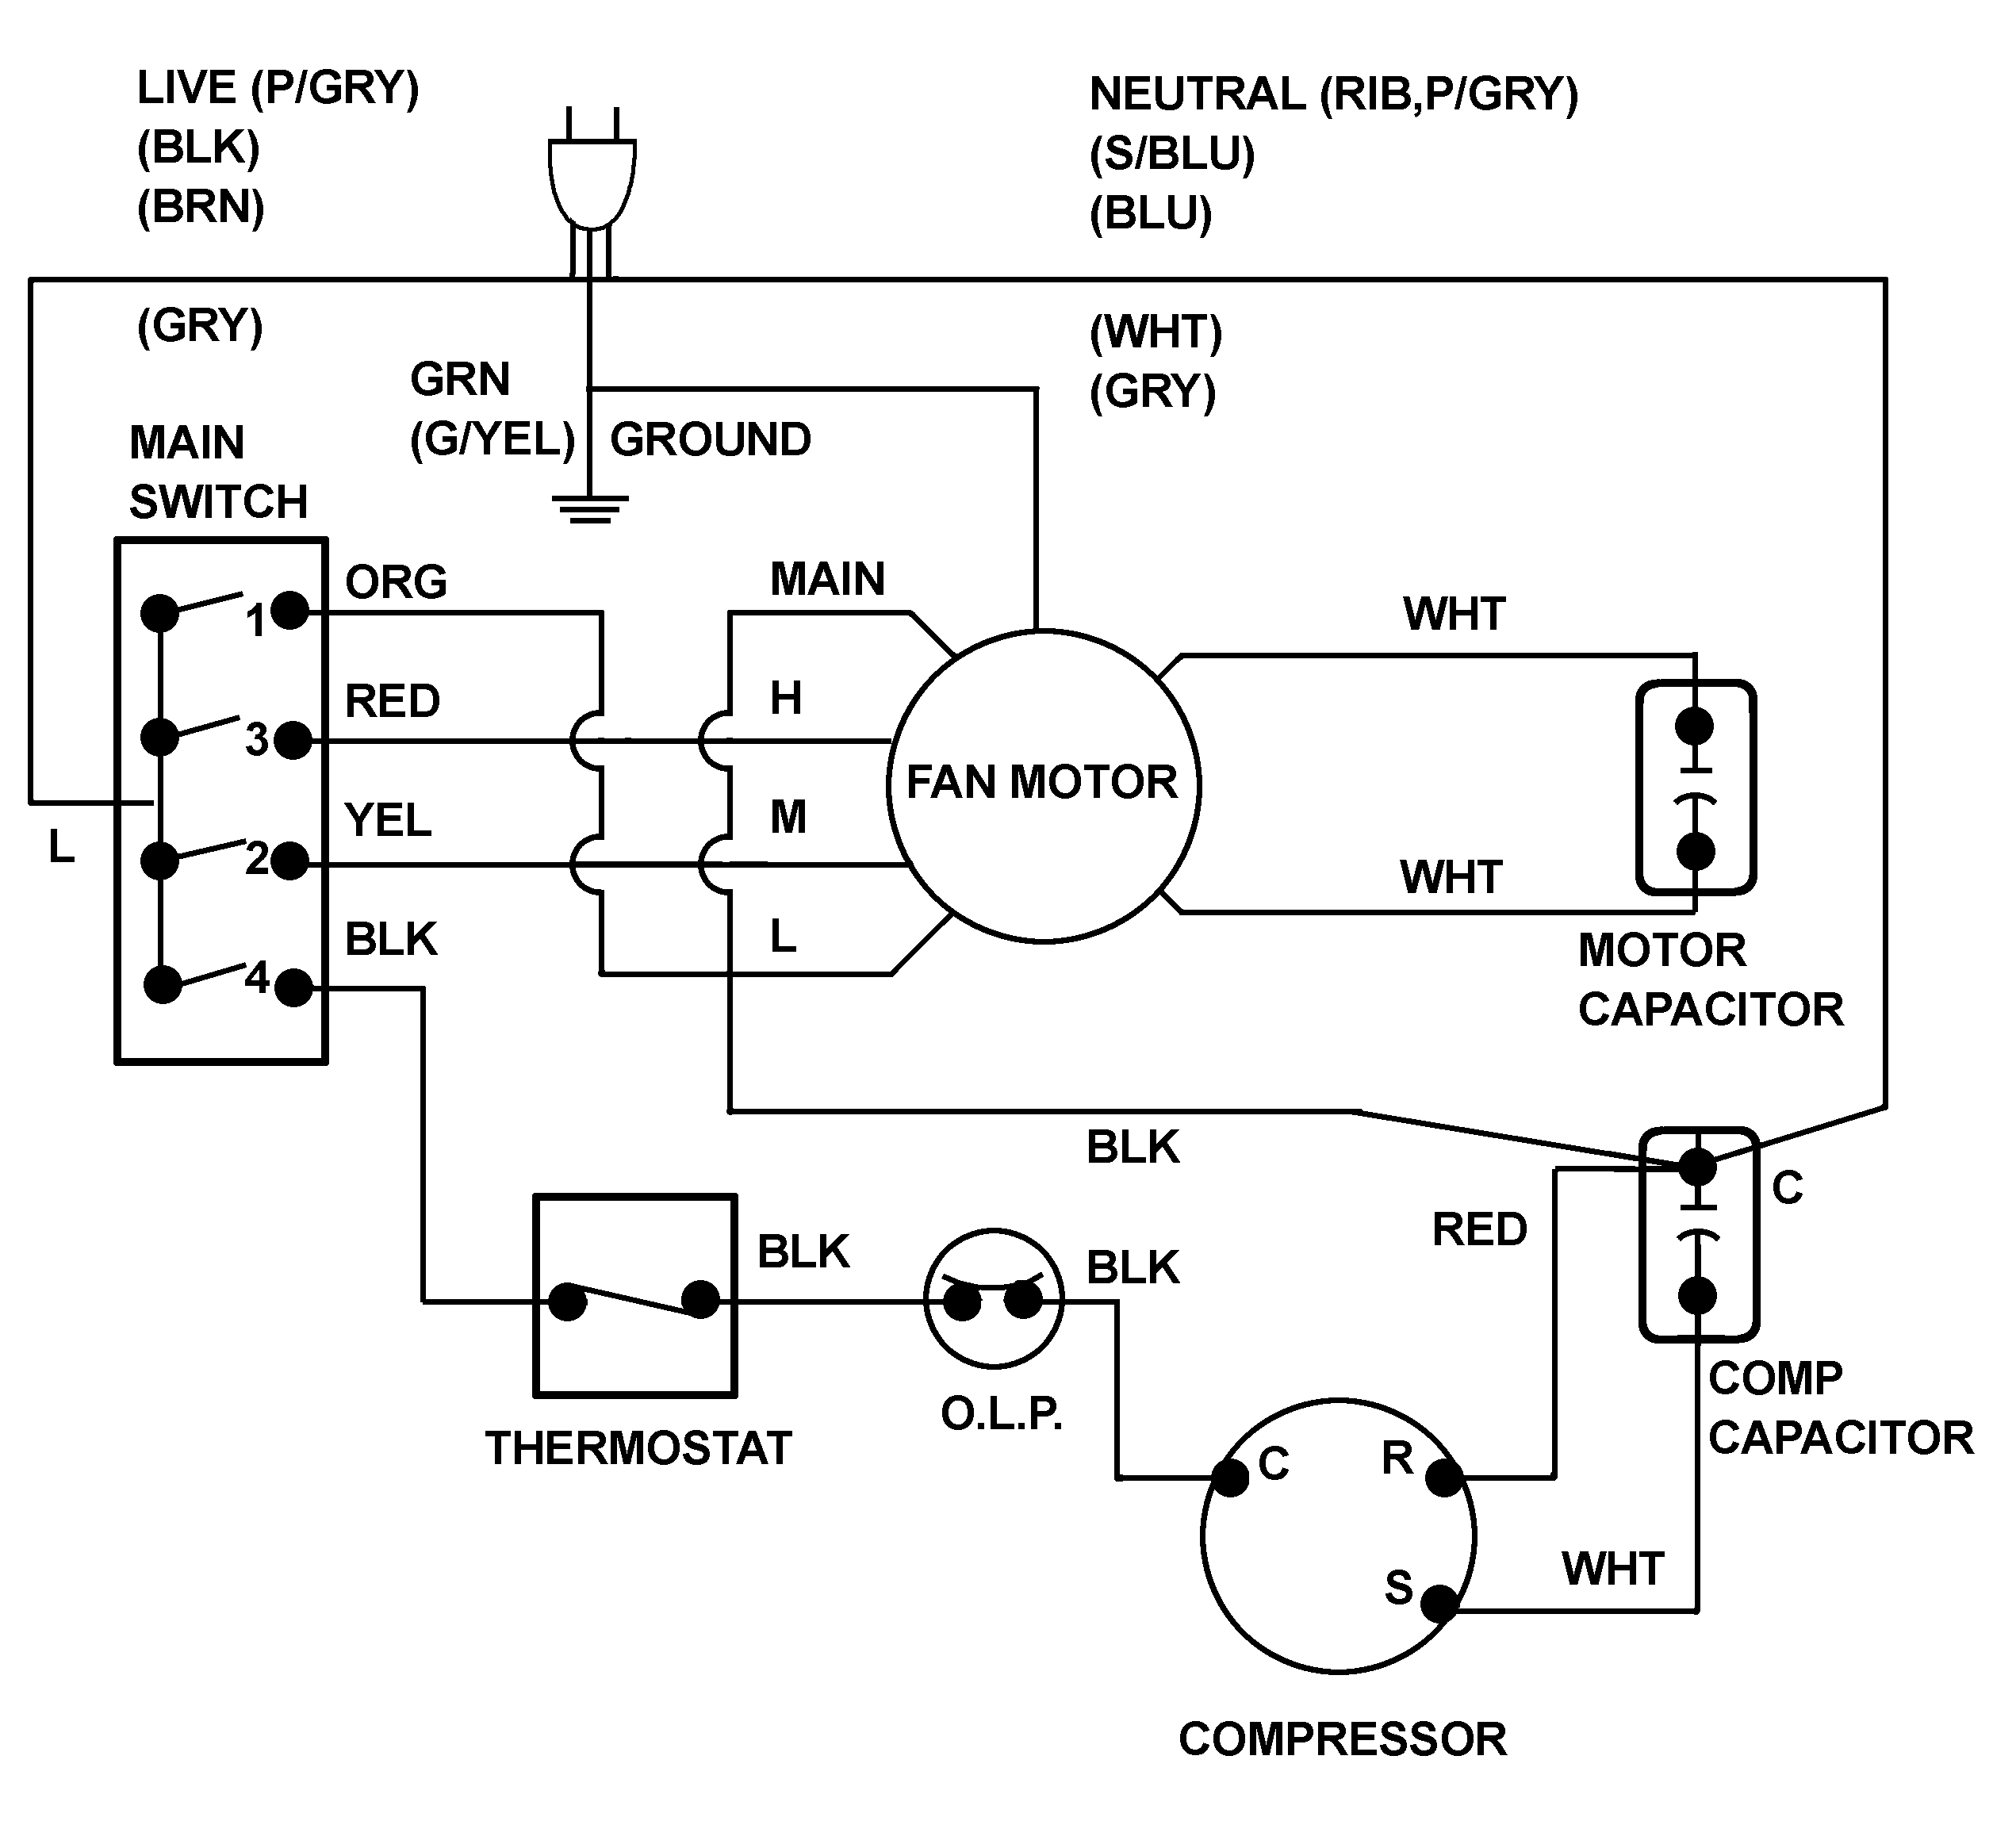 110 Volt A C Compressor Wiring Diagram - Wiring Diagram Rows Basic Volt Wiring Schematic on 480 volt wiring, 12 volt wiring, electrical wiring, case 220 wiring, 220 wire to 110 wiring, 110 phase wiring, campbell hausfeld compressor wiring, 220 volt generator plug wiring, 110 plug wiring, single phase wiring, 50 amp wiring, 120 volt wiring, basic 110 wiring, 3 wire 220 volt wiring, 277 volt wiring,